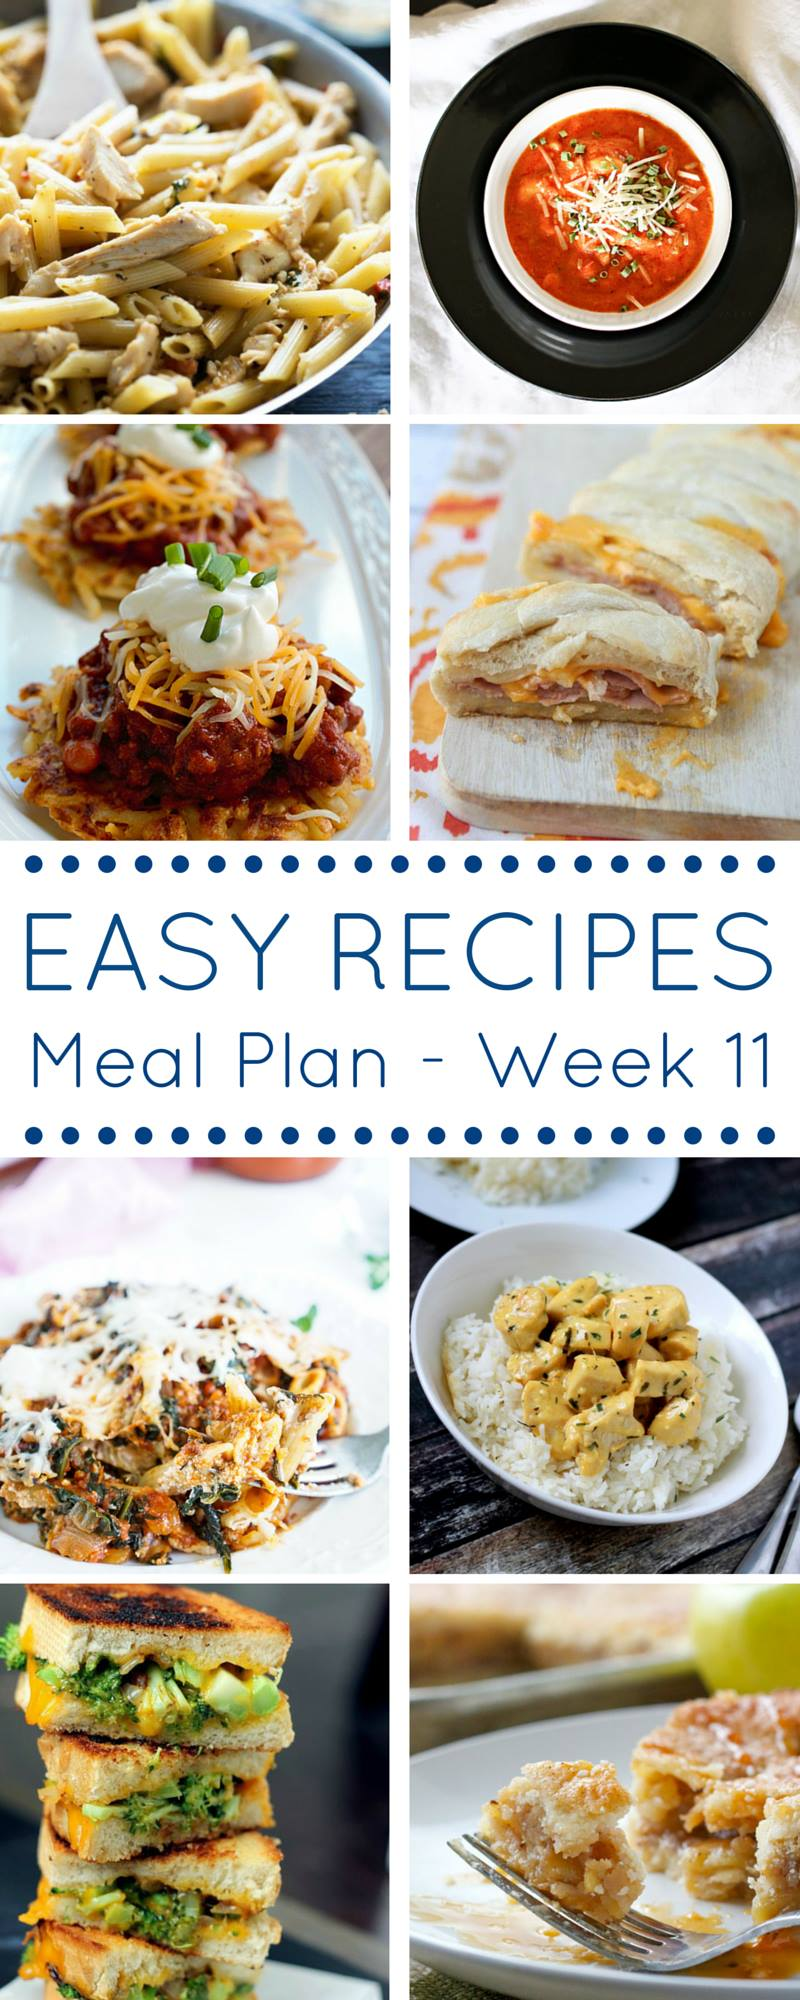 Easy Dinner Recipes Meal Plan - 7 Easy Recipes and 1 Delicious Dessert just for you!